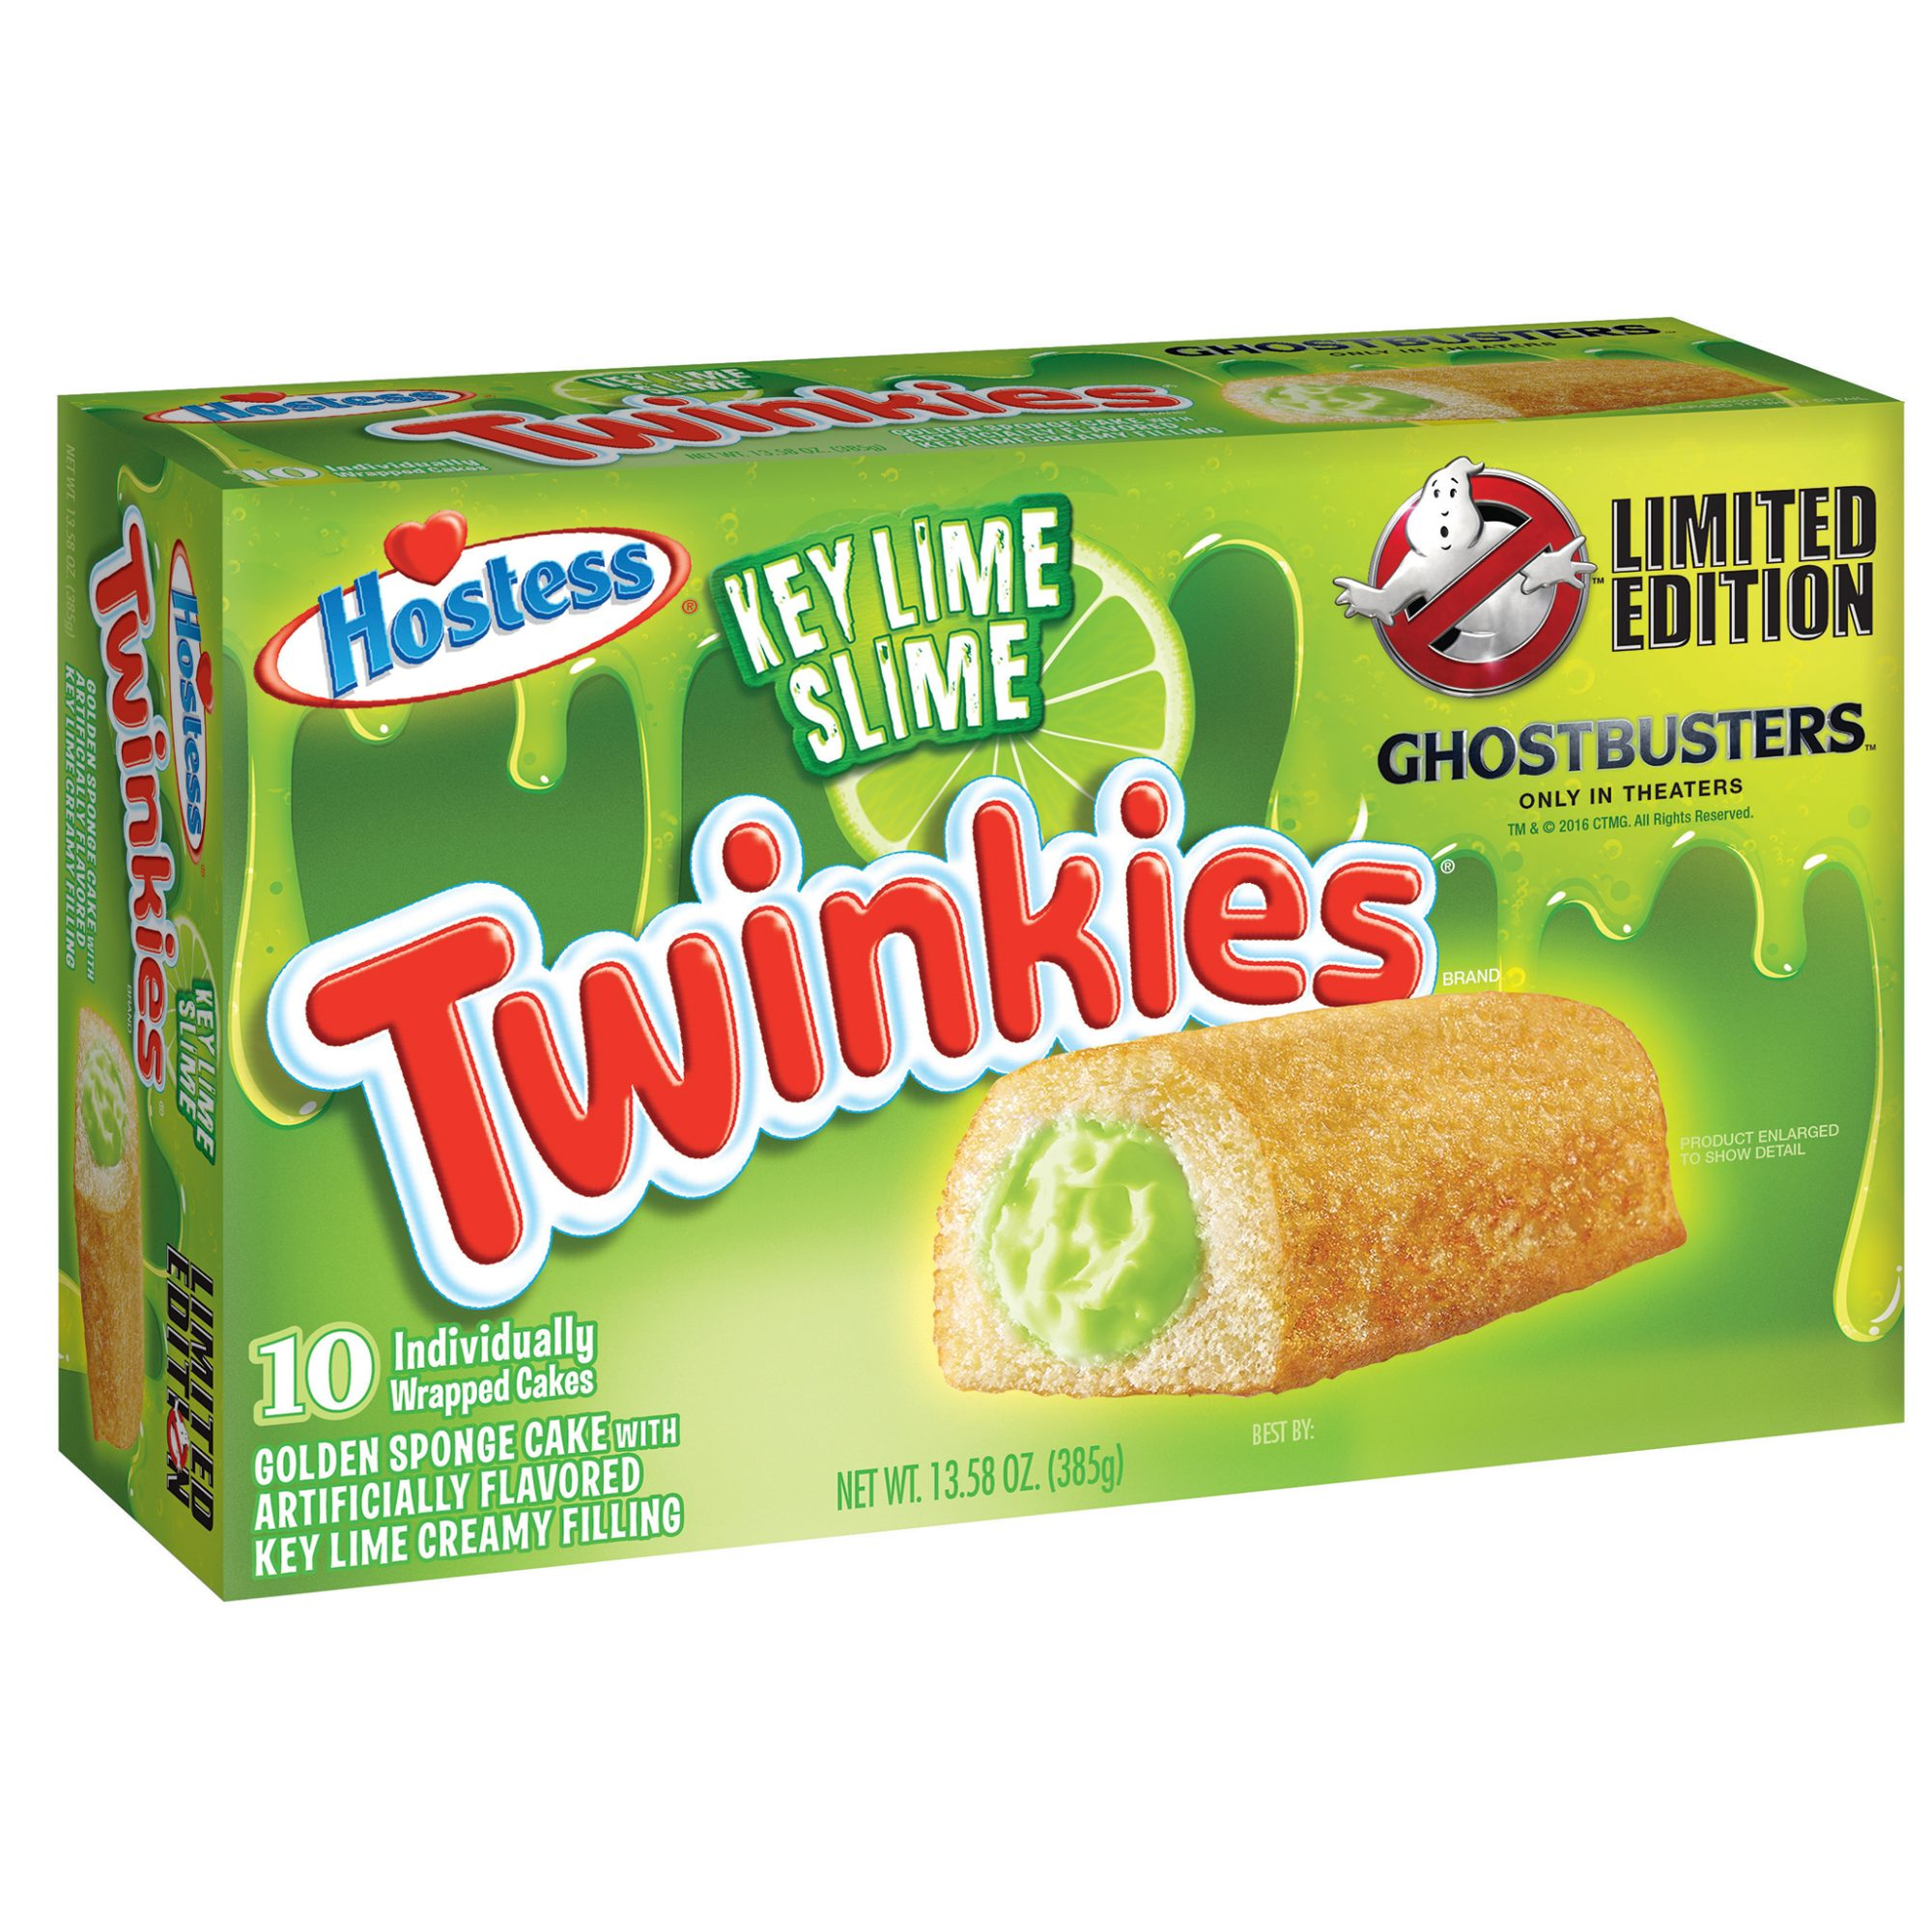 Twinkies Get Green Slime Filling for Ghostbusters